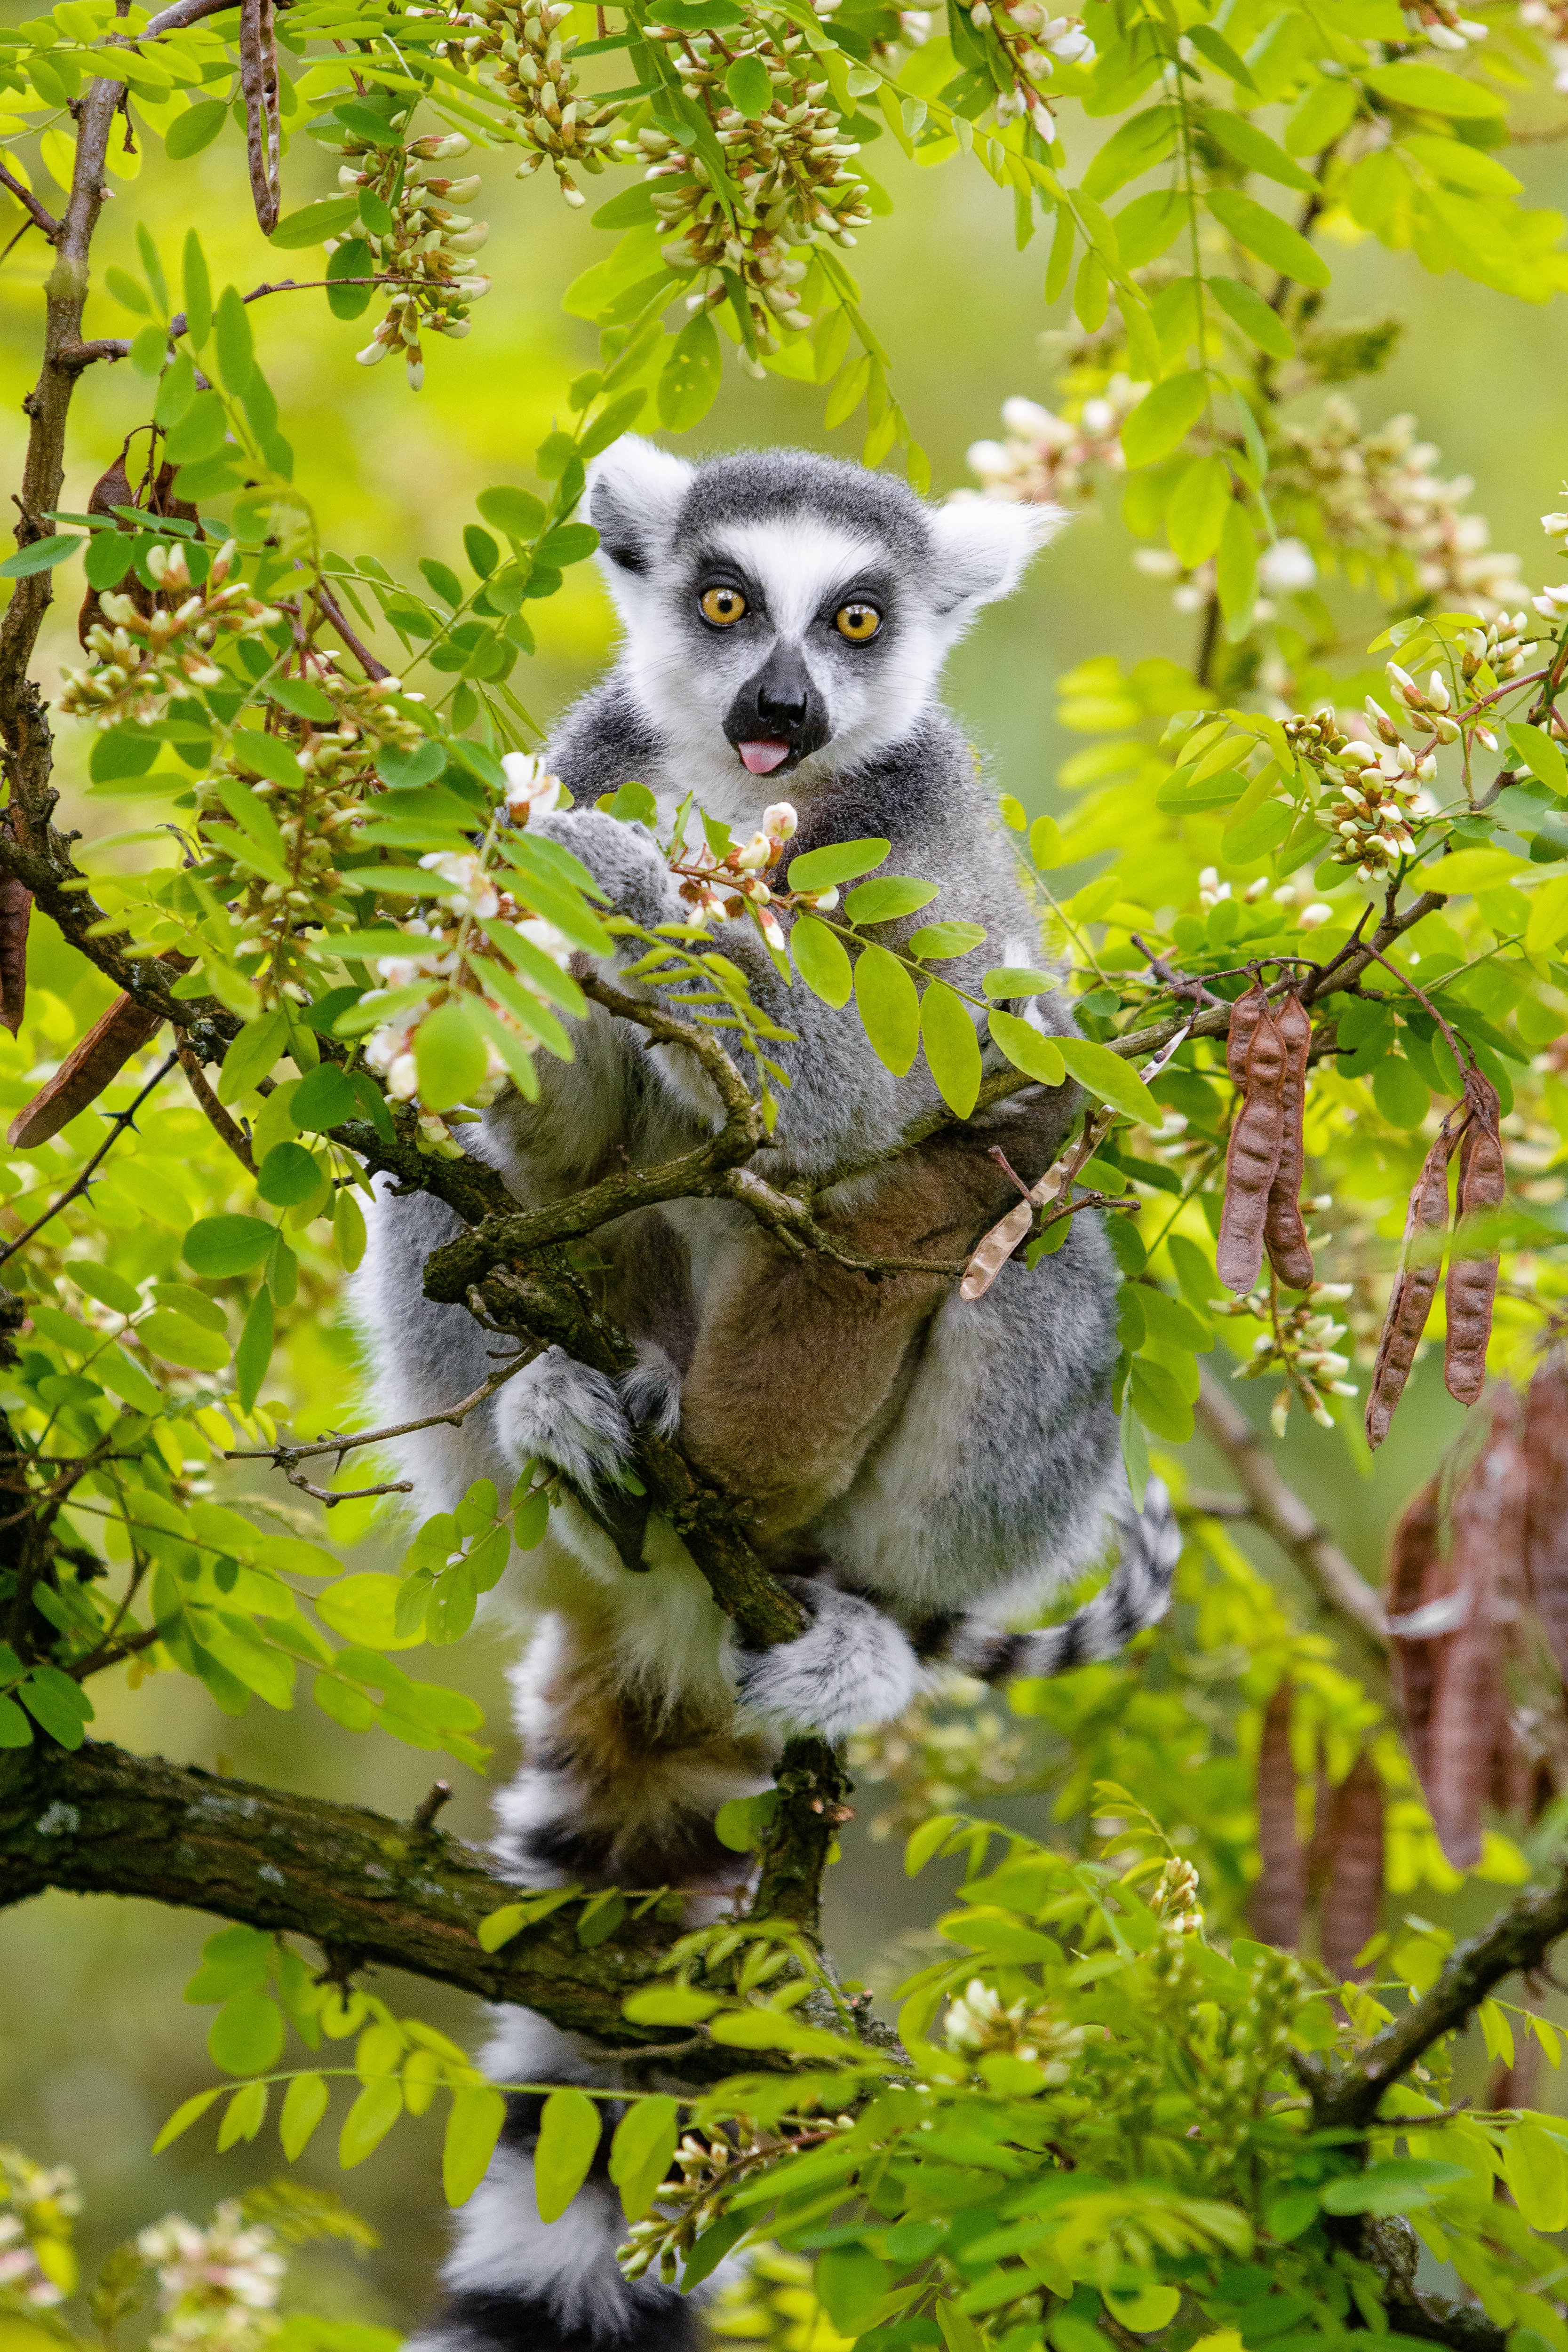 68409 download wallpaper Animals, Lemur, Wood, Tree, Branches, Animal, Funny, Protruding Tongue, Tongue Stuck Out screensavers and pictures for free